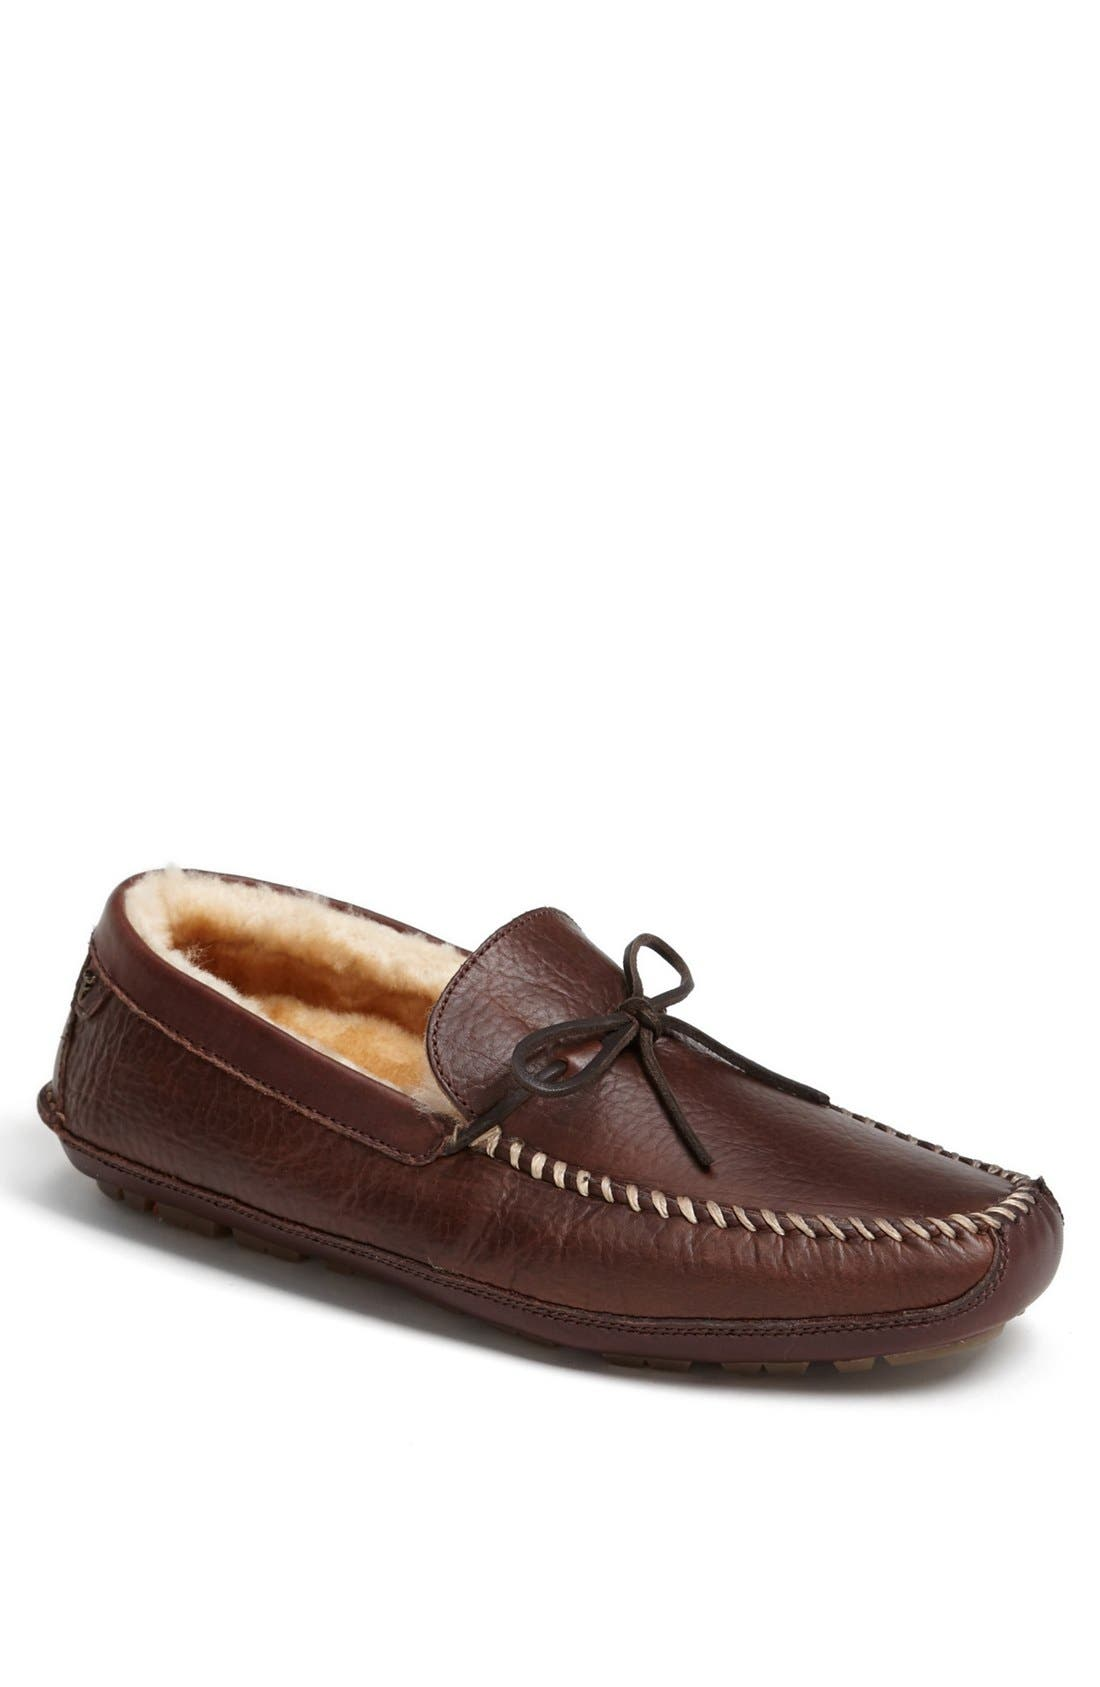 'Polson' Slipper,                         Main,                         color, Bourbon Bison